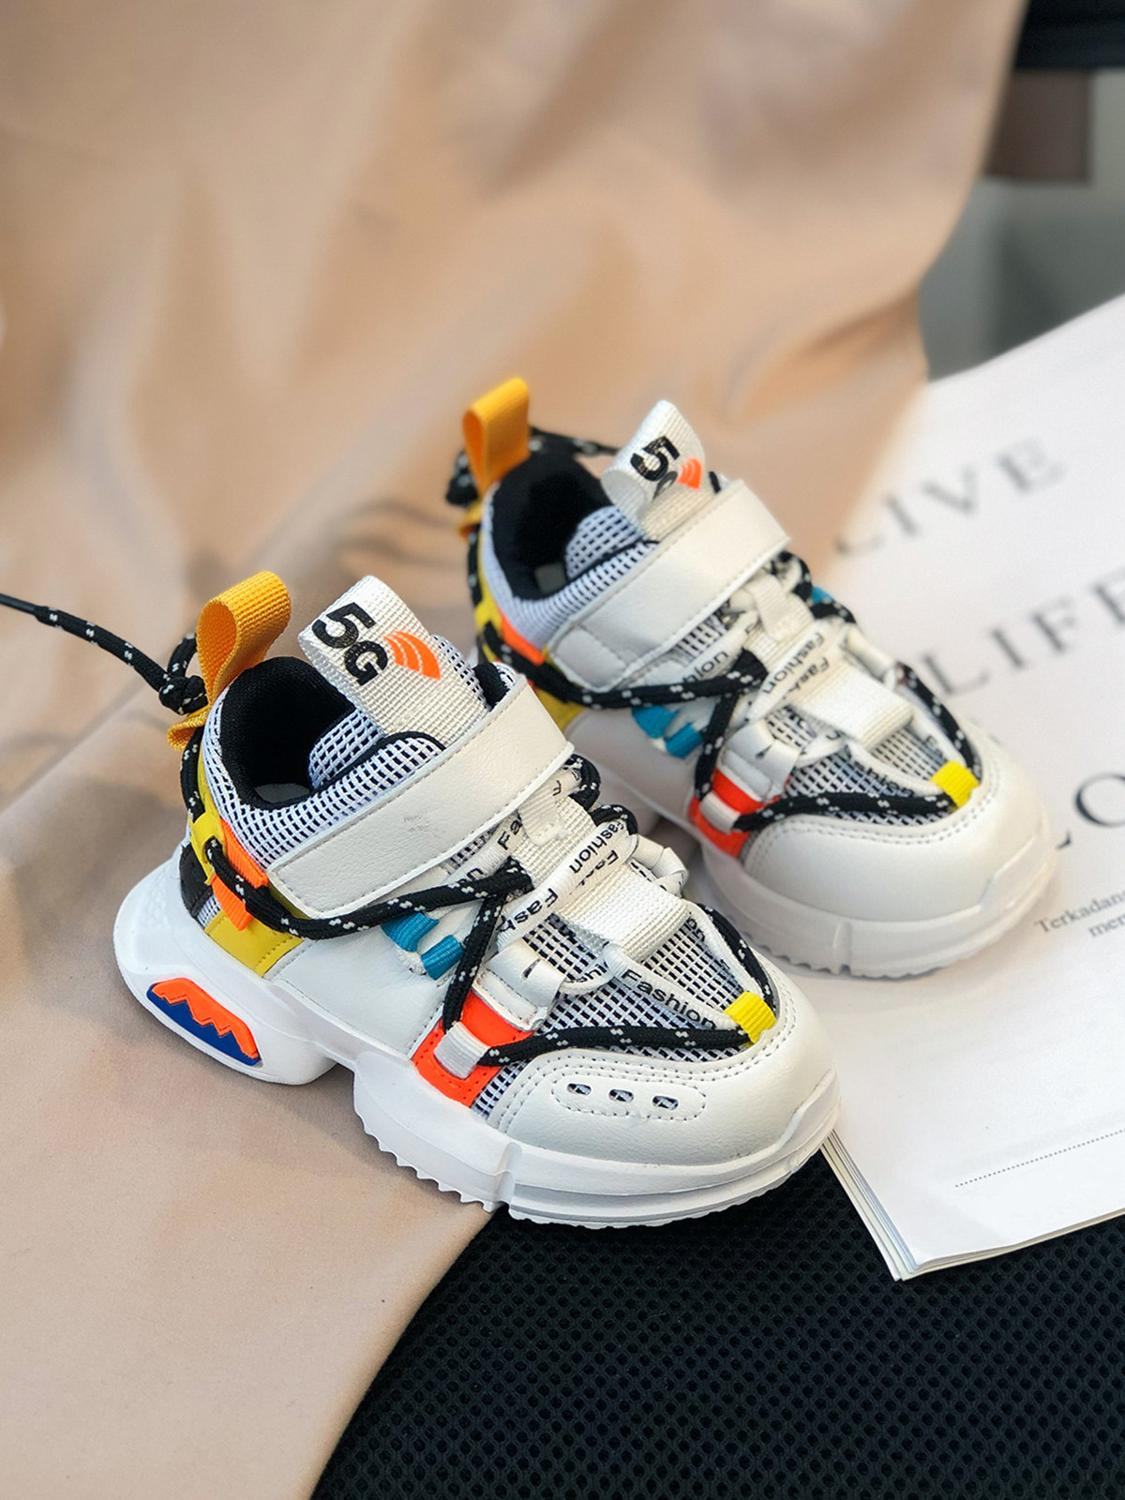 Tennis Kids Shoes Boys Sneakers Soft-Sole Toddler Girls Fashion Breathable Spring/autumn